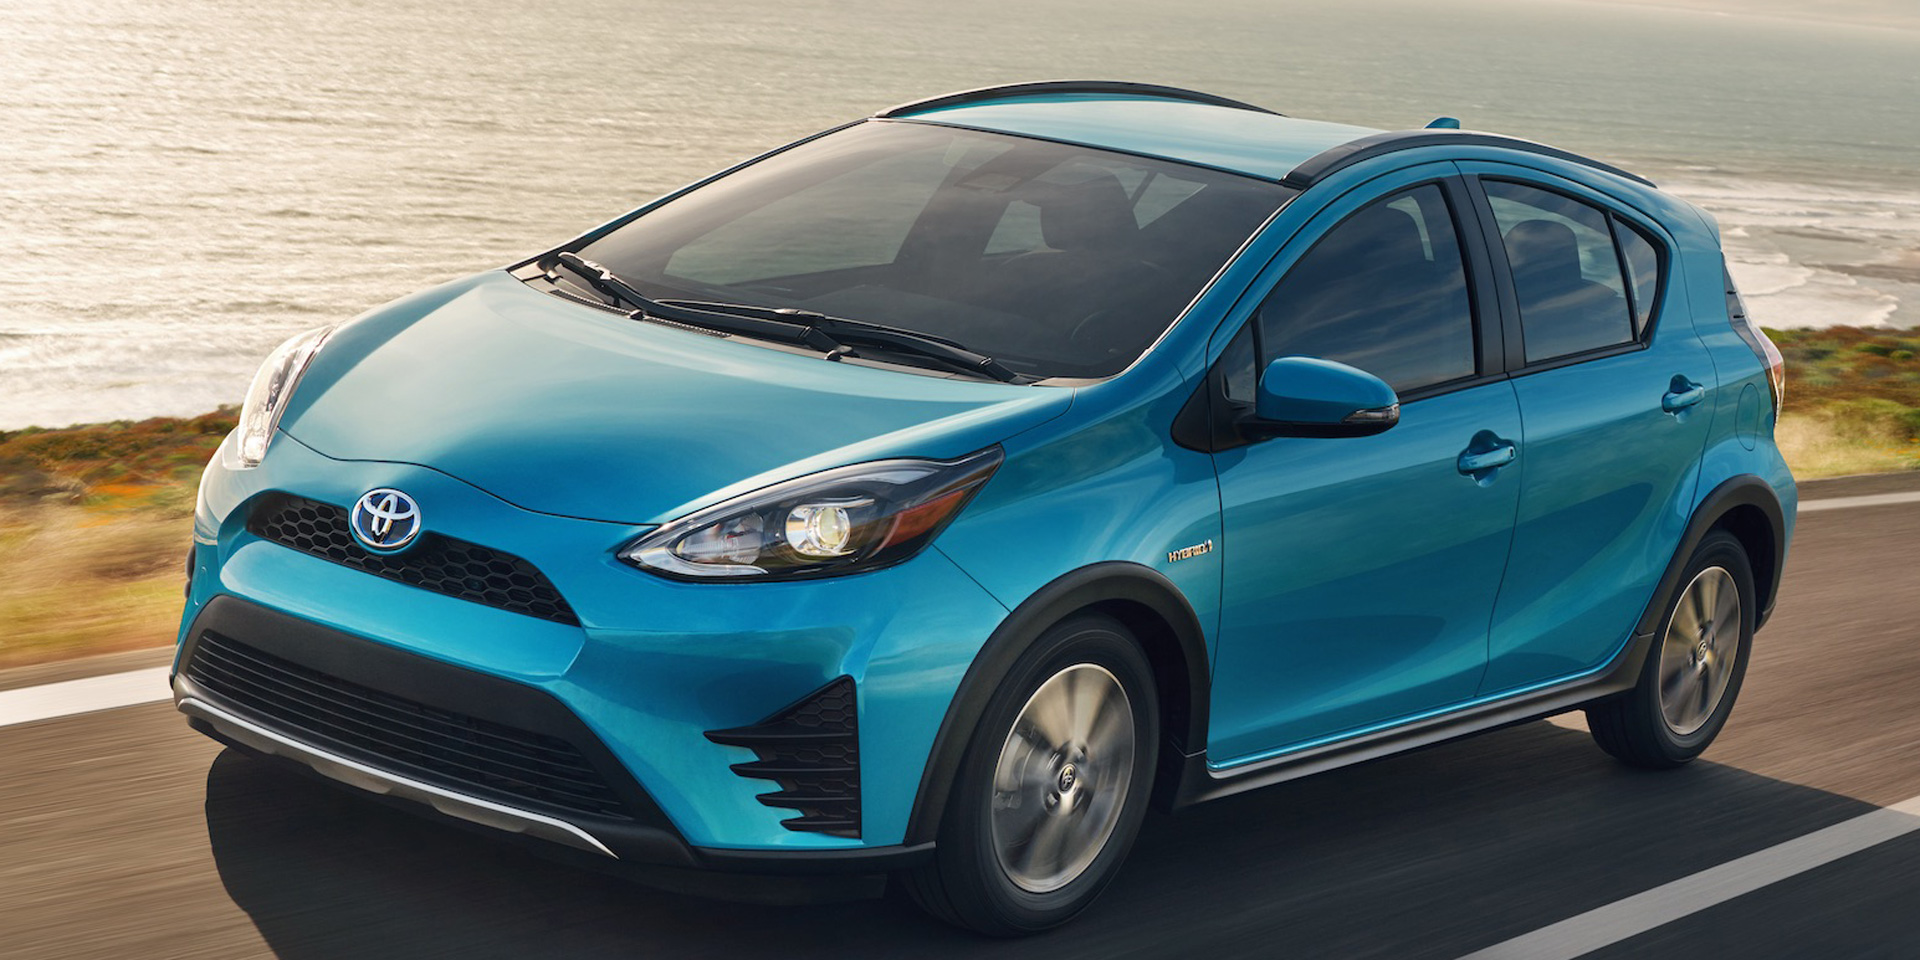 2018 toyota prius c vehicles on display chicago auto show. Black Bedroom Furniture Sets. Home Design Ideas